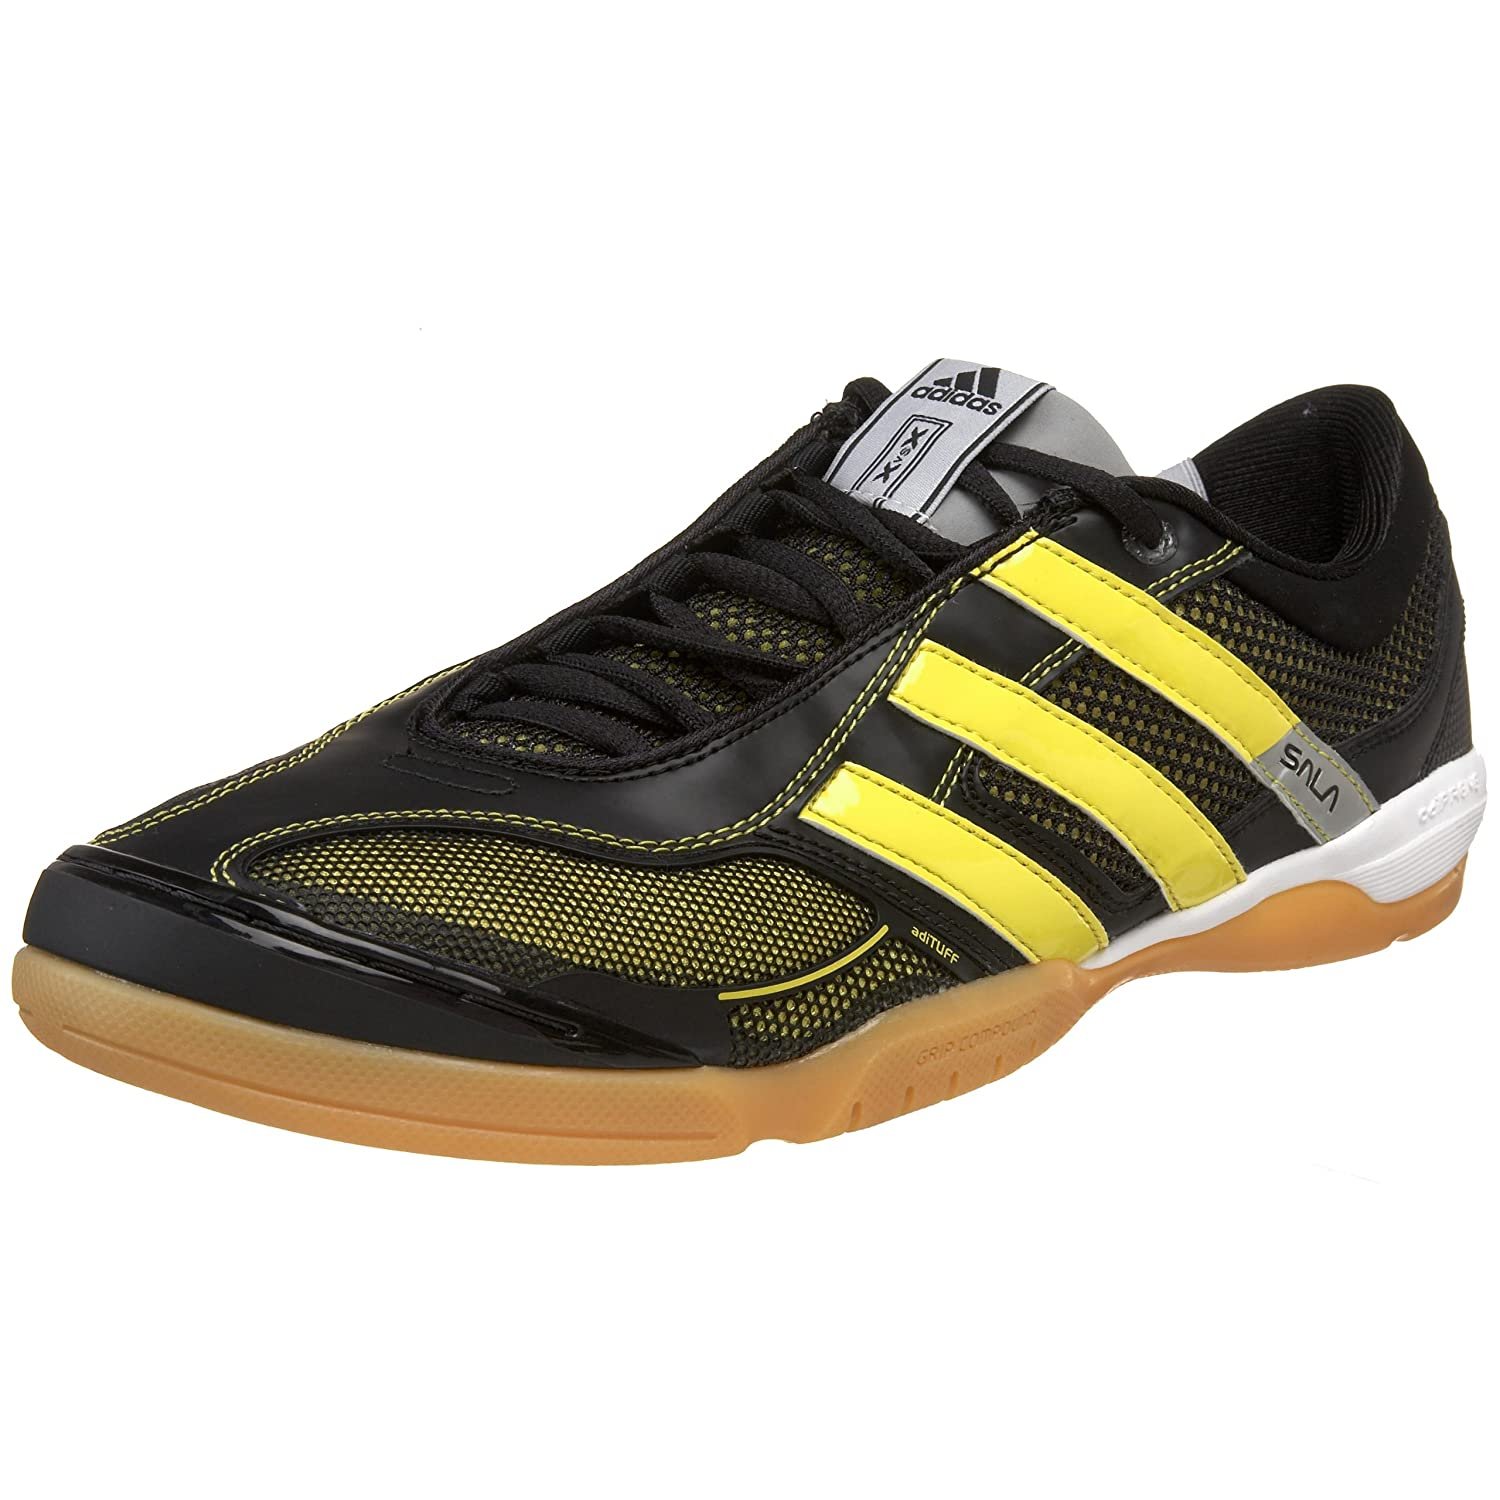 Adidas XvsX Sala AdiPrene Indoor Soccer Shoes Men Brand New